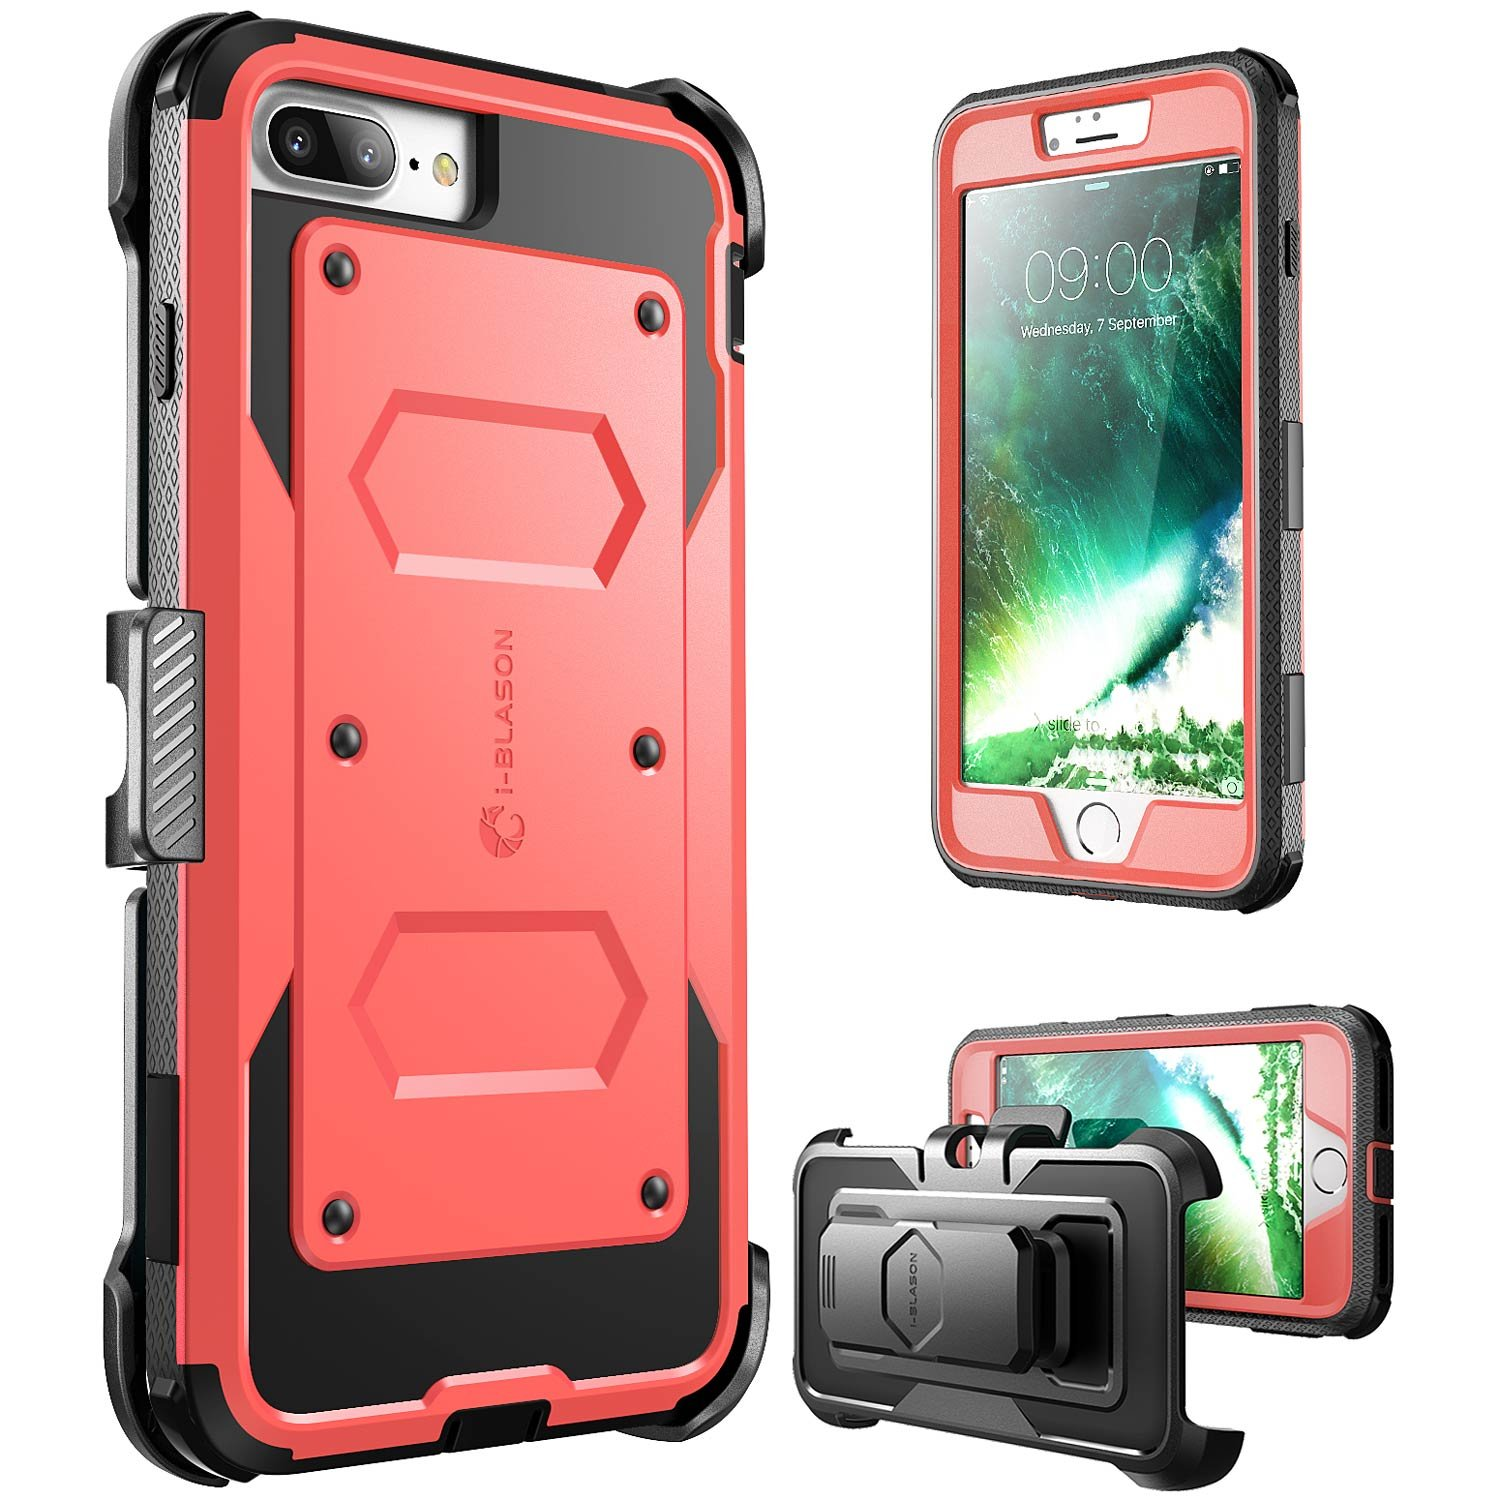 iPhone 8 Plus Case, [Armorbox] i-Blason built in [Screen Protector] [Full body] [Heavy Duty Protection ] Shock Reduction / Bumper Case for Apple iPhone 7 Plus 2016 / iPhone 8 Plus 2017 Release(Pink) i-Blason inc iPhone7sPlus-Armorbox-Pink